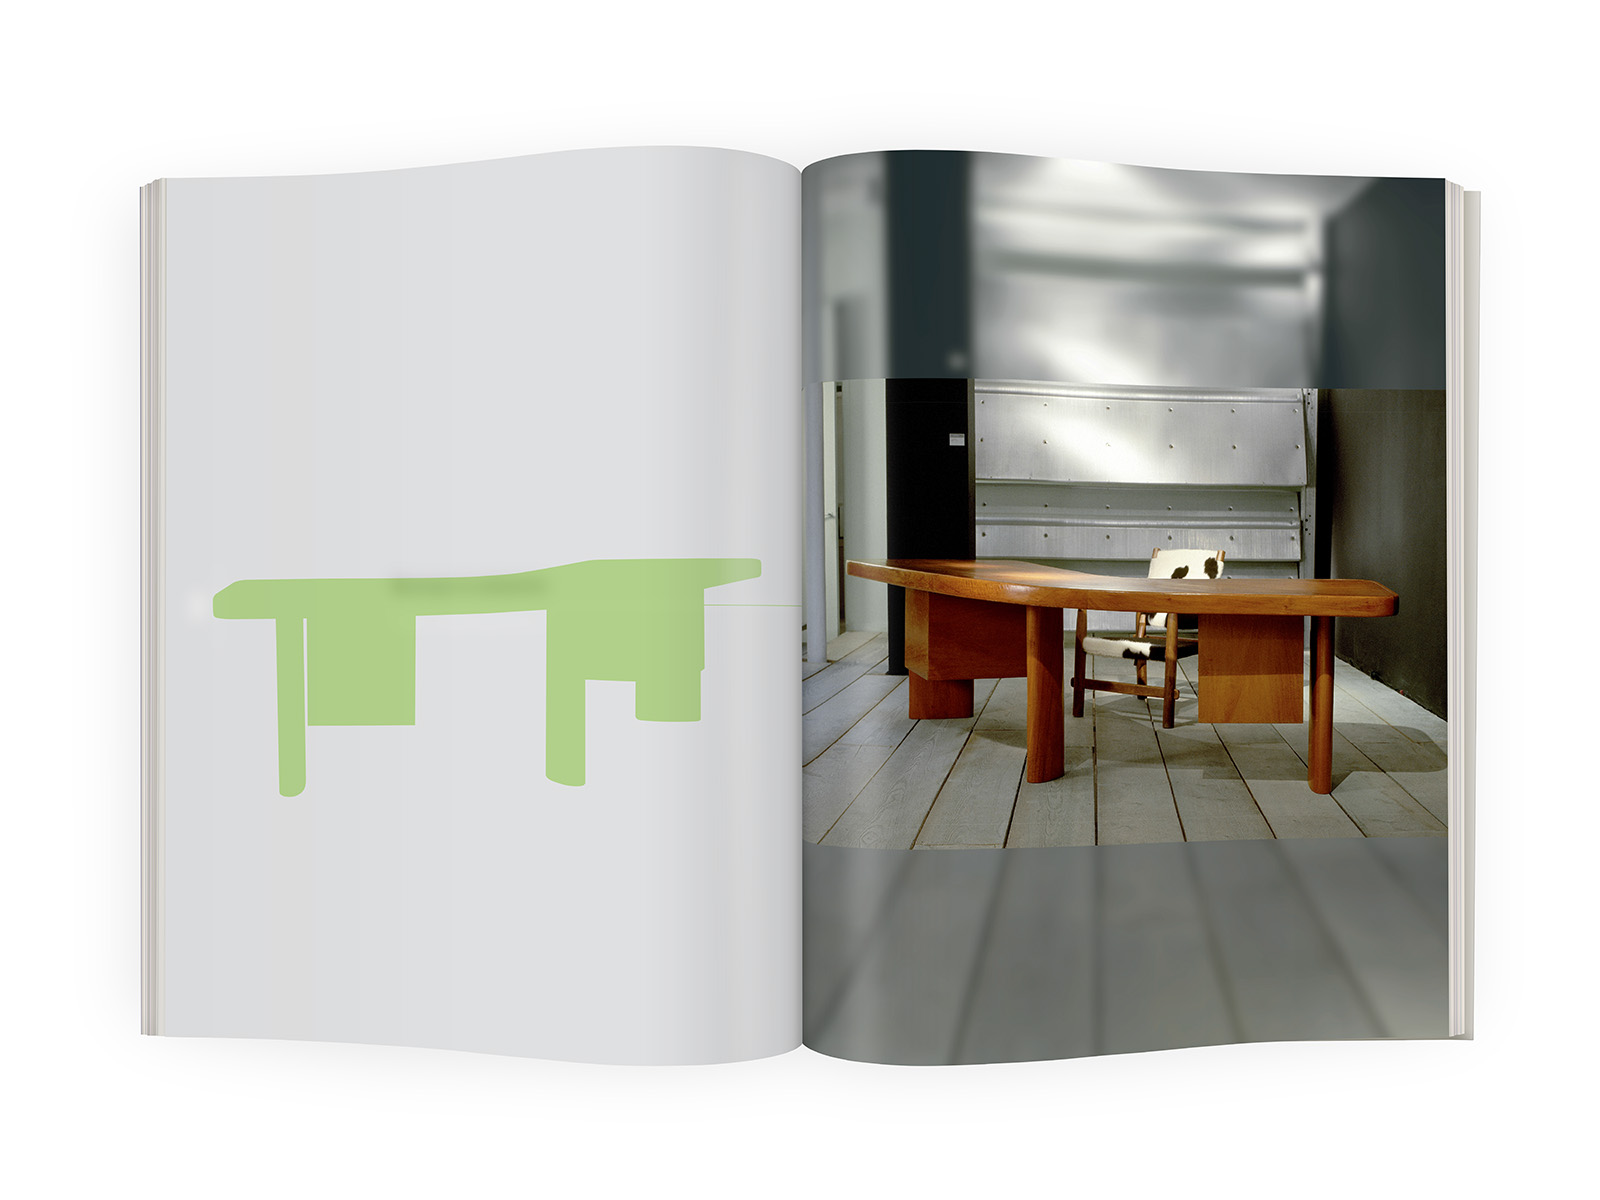 galerieDOWNTOWN - Catalogue Charlotte Perriand Bresil p52-53